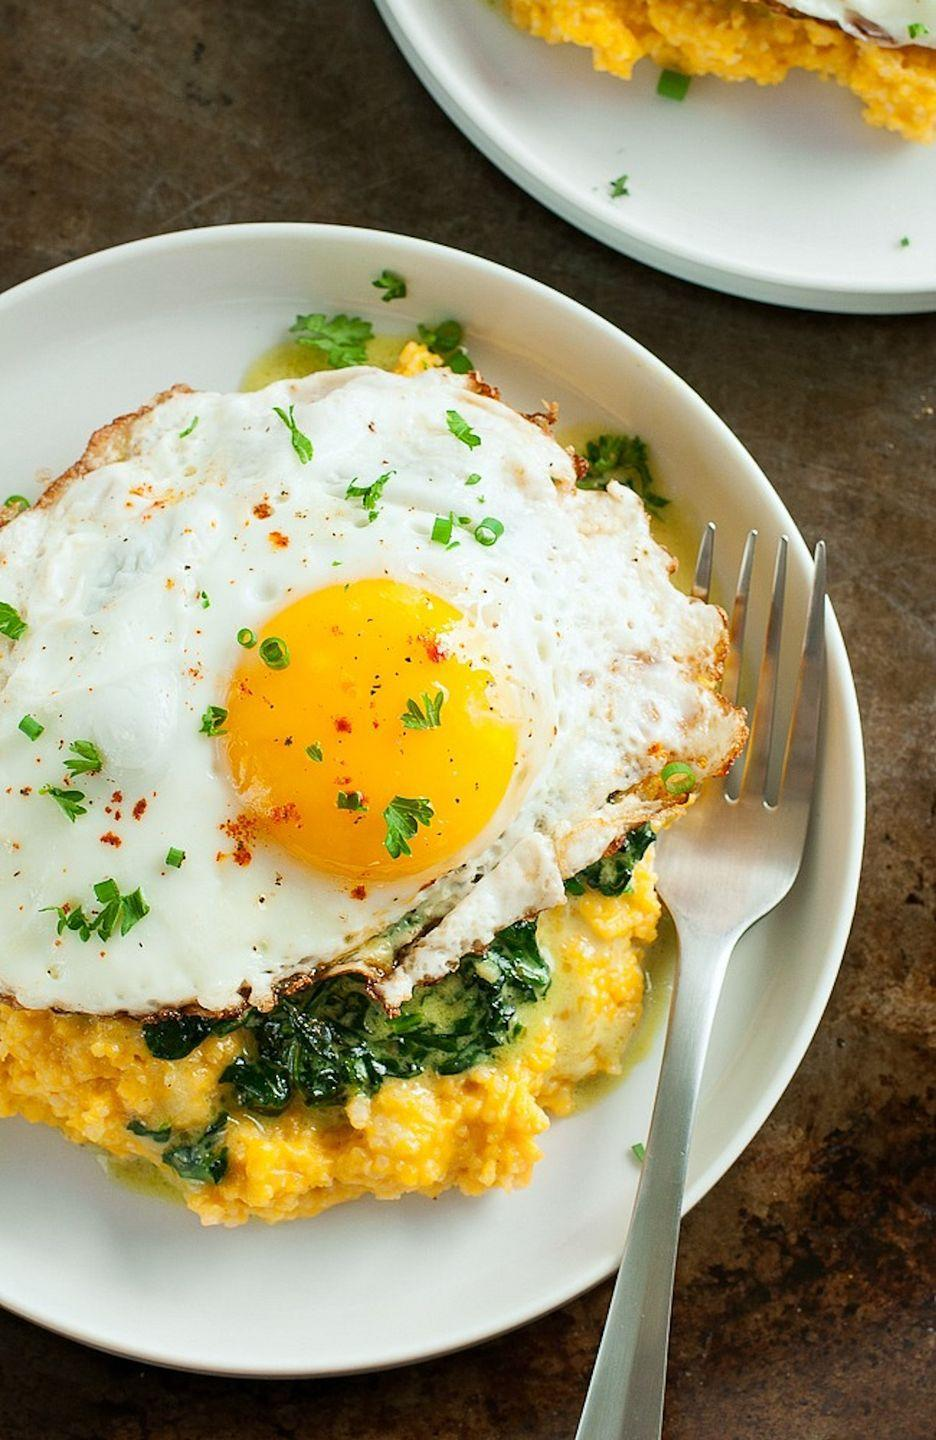 """<p>Didn't think homemade grits could get any better? Think again.</p><p><strong>Get the recipe at <a href=""""http://peasandcrayons.com/2015/12/brown-butter-pumpkin-grits.html"""" rel=""""nofollow noopener"""" target=""""_blank"""" data-ylk=""""slk:Peas and Crayons"""" class=""""link rapid-noclick-resp"""">Peas and Crayons</a>.</strong></p><p><a class=""""link rapid-noclick-resp"""" href=""""https://www.amazon.com/HSTYAIG-Butter-Warmers-Melting-Stainless/dp/B082TZVWY6?tag=syn-yahoo-20&ascsubtag=%5Bartid%7C10050.g.619%5Bsrc%7Cyahoo-us"""" rel=""""nofollow noopener"""" target=""""_blank"""" data-ylk=""""slk:SHOP BUTTER WARMERS"""">SHOP BUTTER WARMERS</a></p>"""